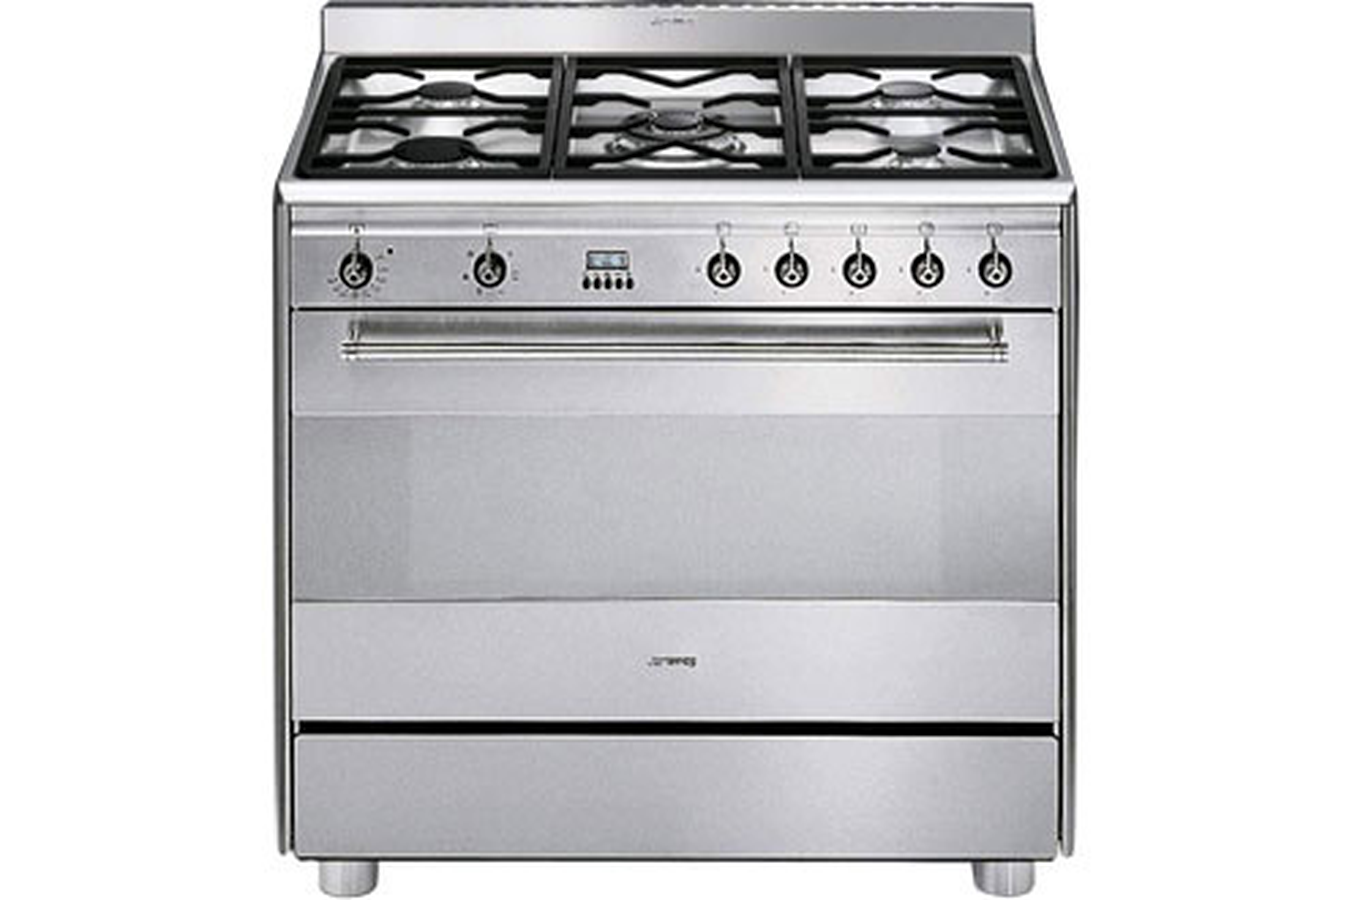 Piano de cuisson smeg scb 91 mfx 5 inox 2013177 darty for Piano cuisine electrique